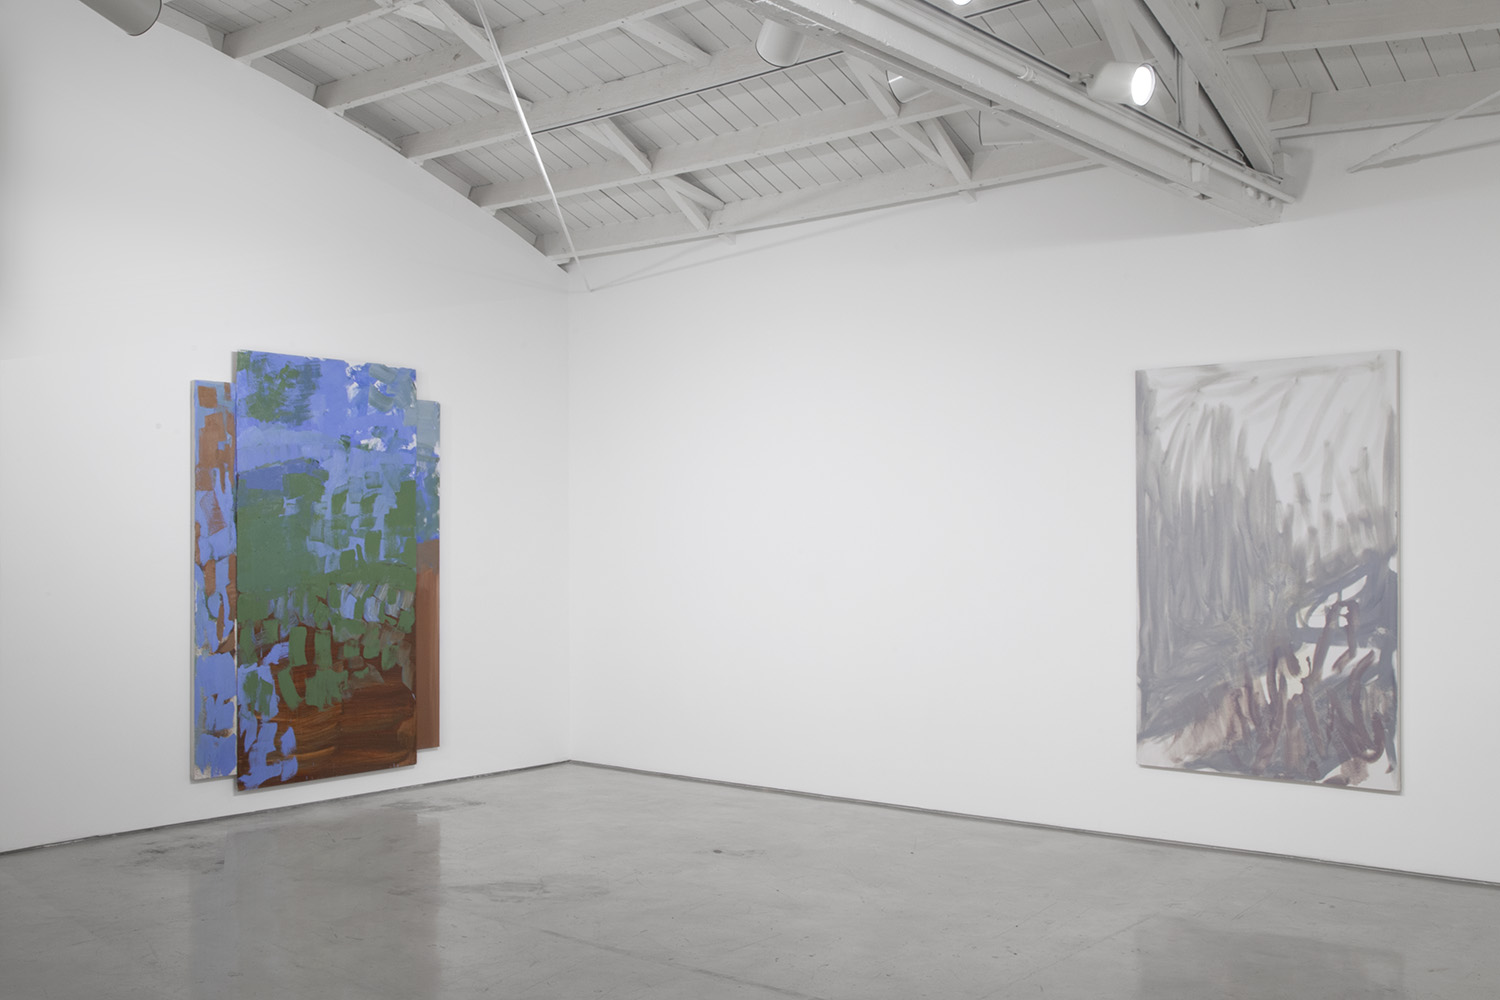 Installation view, 4:00 Universe, 2020, Photograph courtesy of Morán Morán